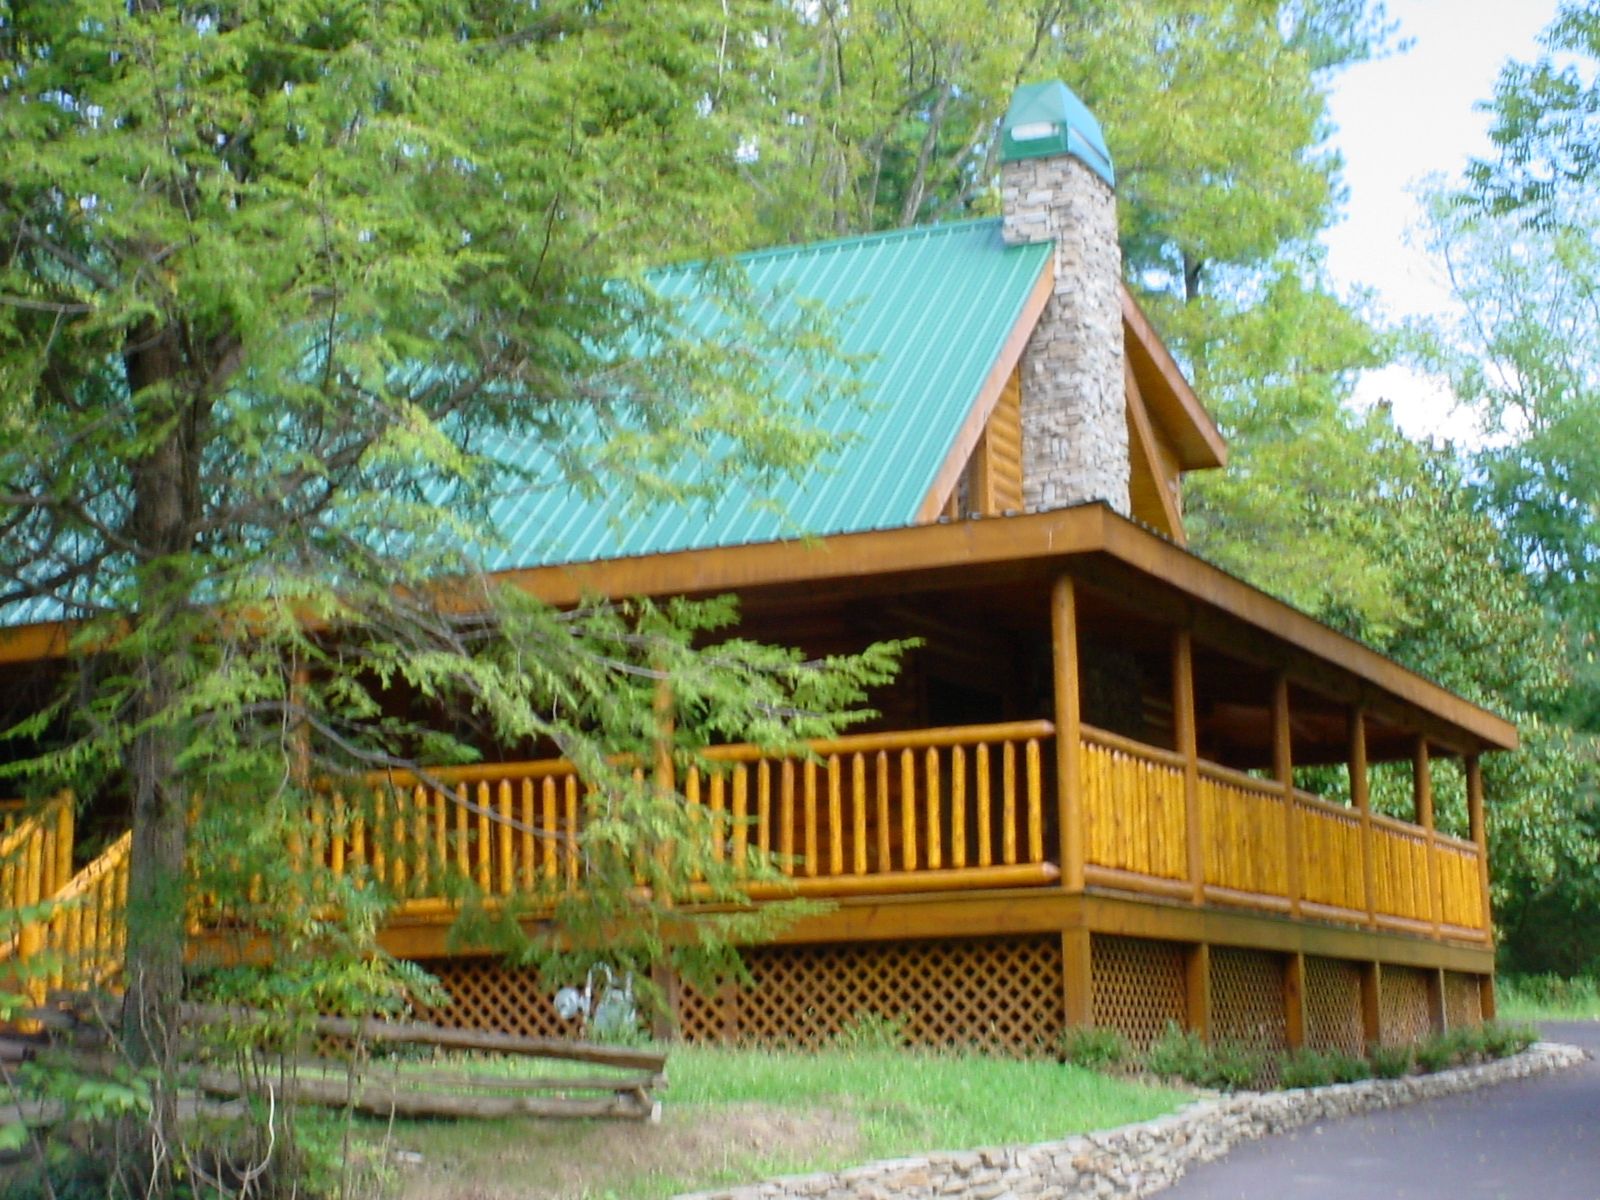 pyt bathroom log cabins specials dollywood affordable heavenly pigeon bear rentals view plans tn home cabin inspiration forge near